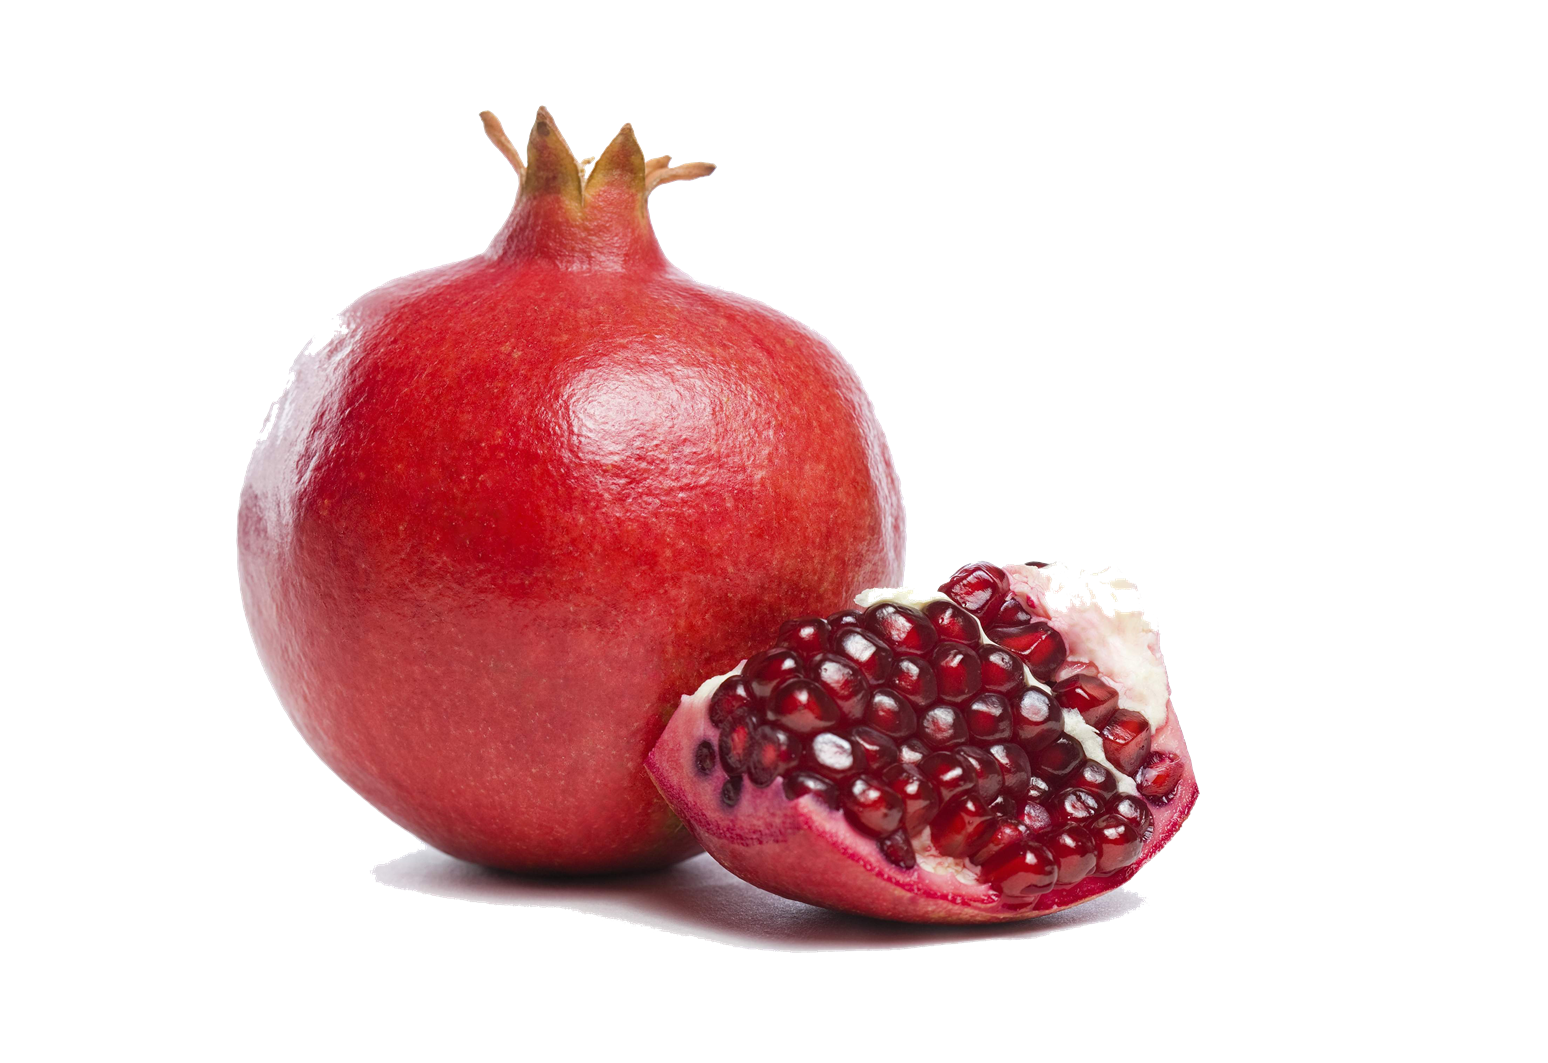 Pomegranate clipart pomegranite. Png transparent image mart